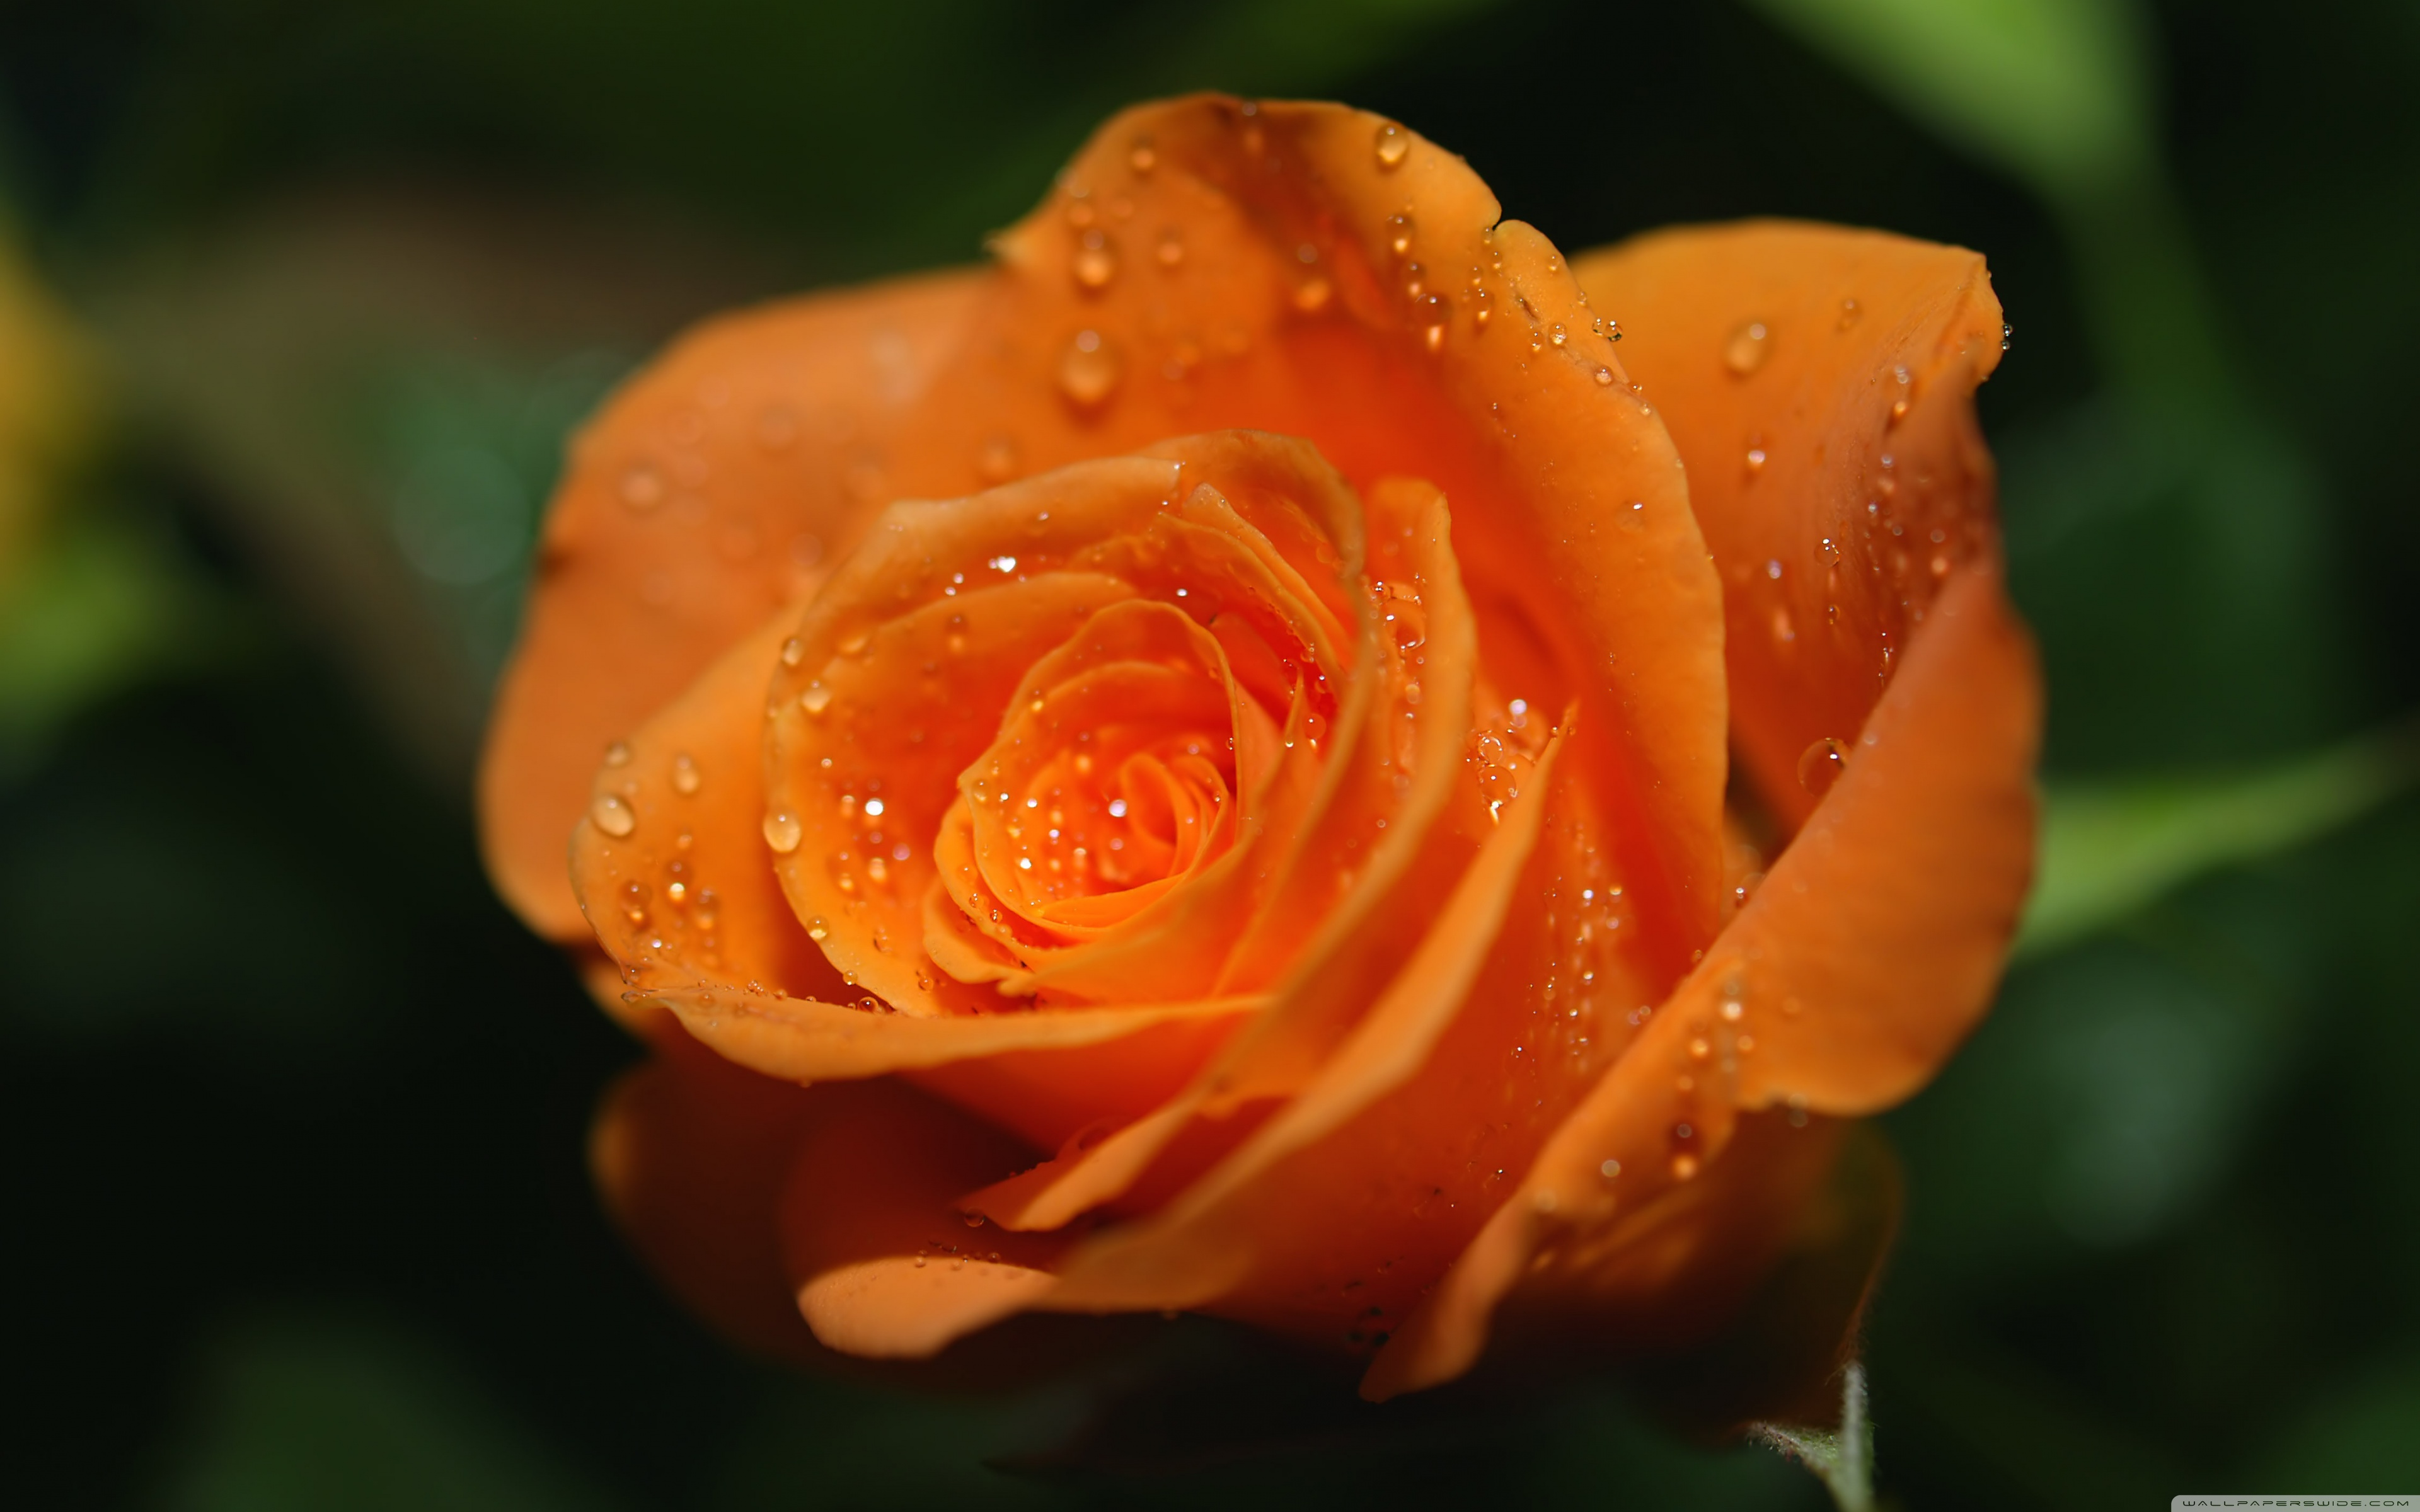 Orange Roses Wallpaper 29745 1920x1200 px